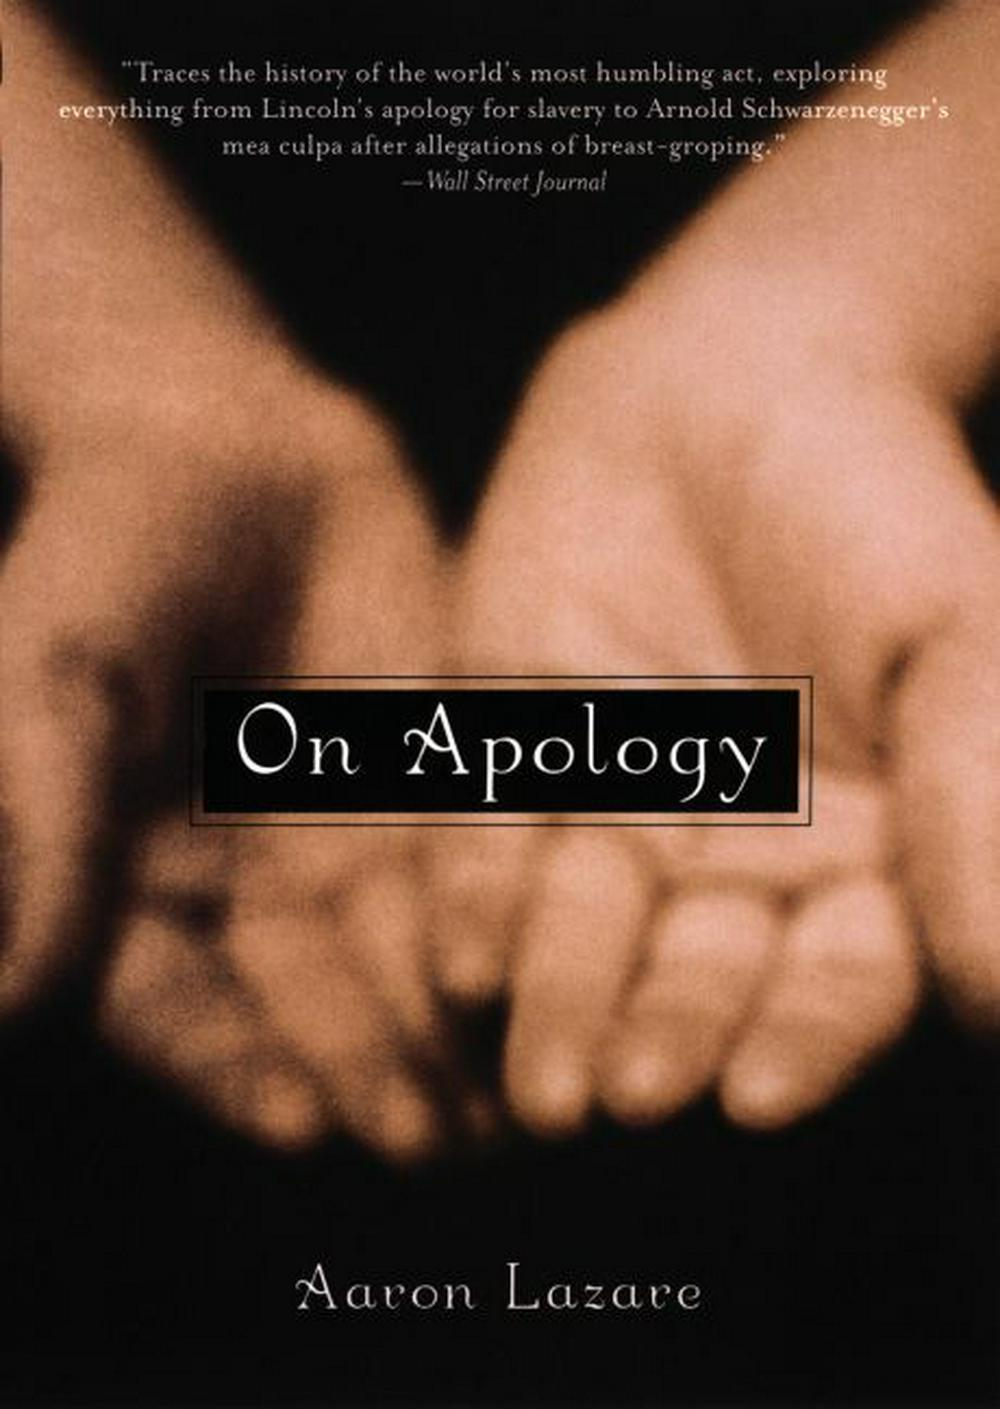 On Apology by Aaron Lazare, ISBN: 9780195189117